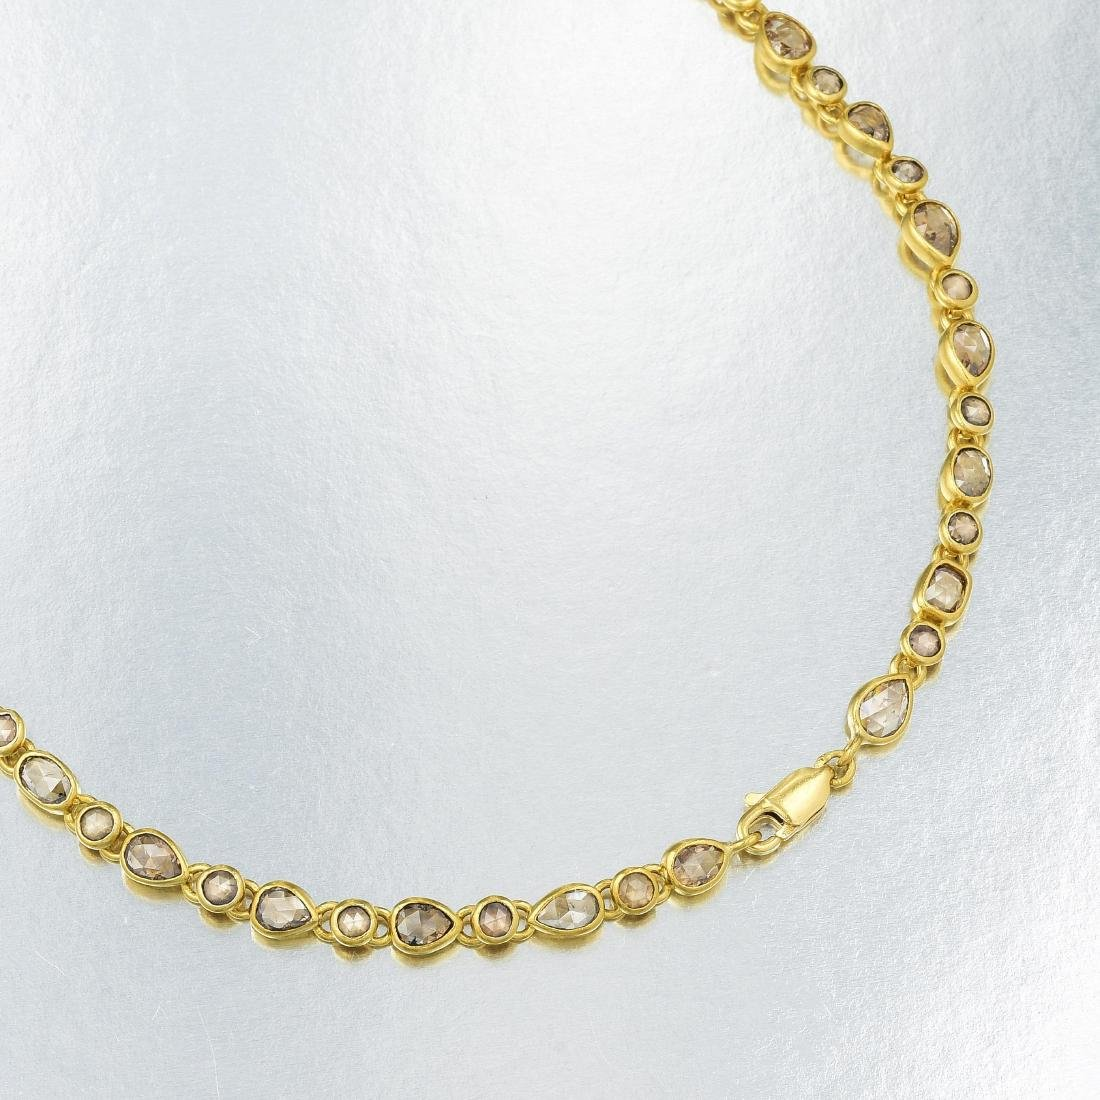 Indian Gold and Rose-Cut Diamond Long Chain Necklace - 3